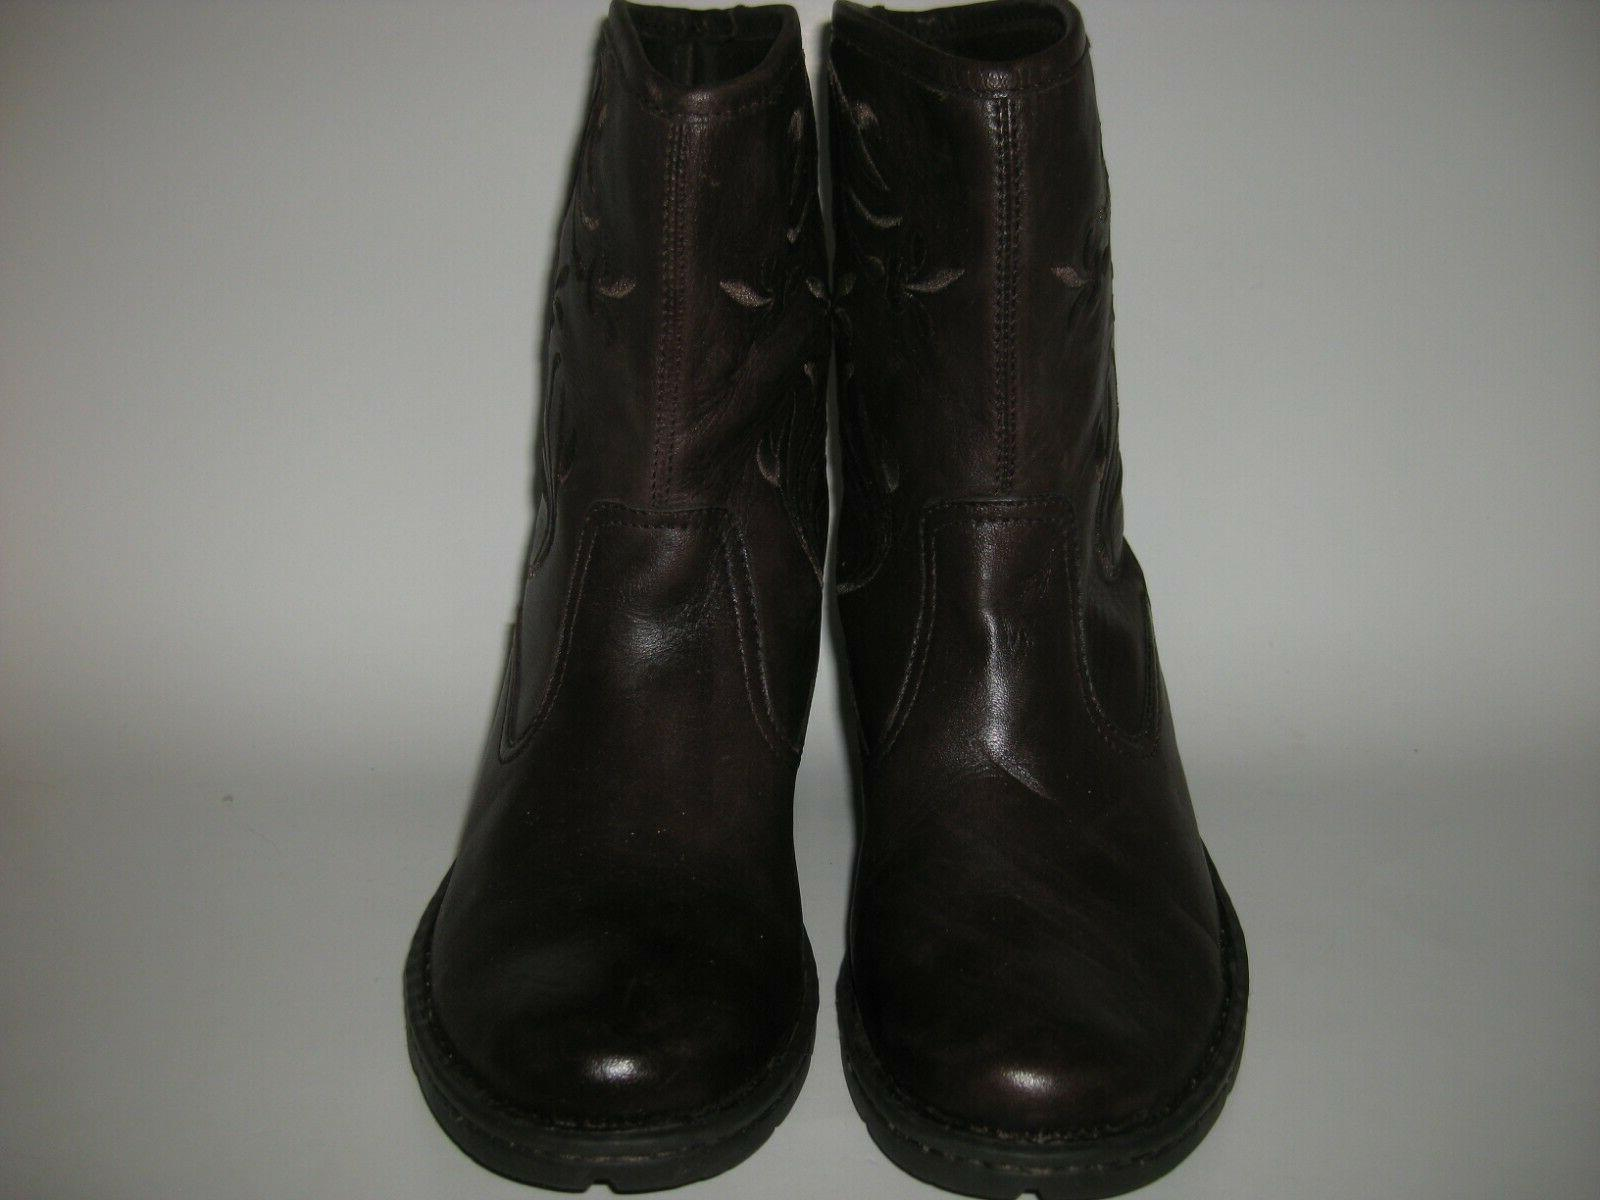 Eastland Amelia Dark Brown Western Style Boots Shoes 3329-02 _